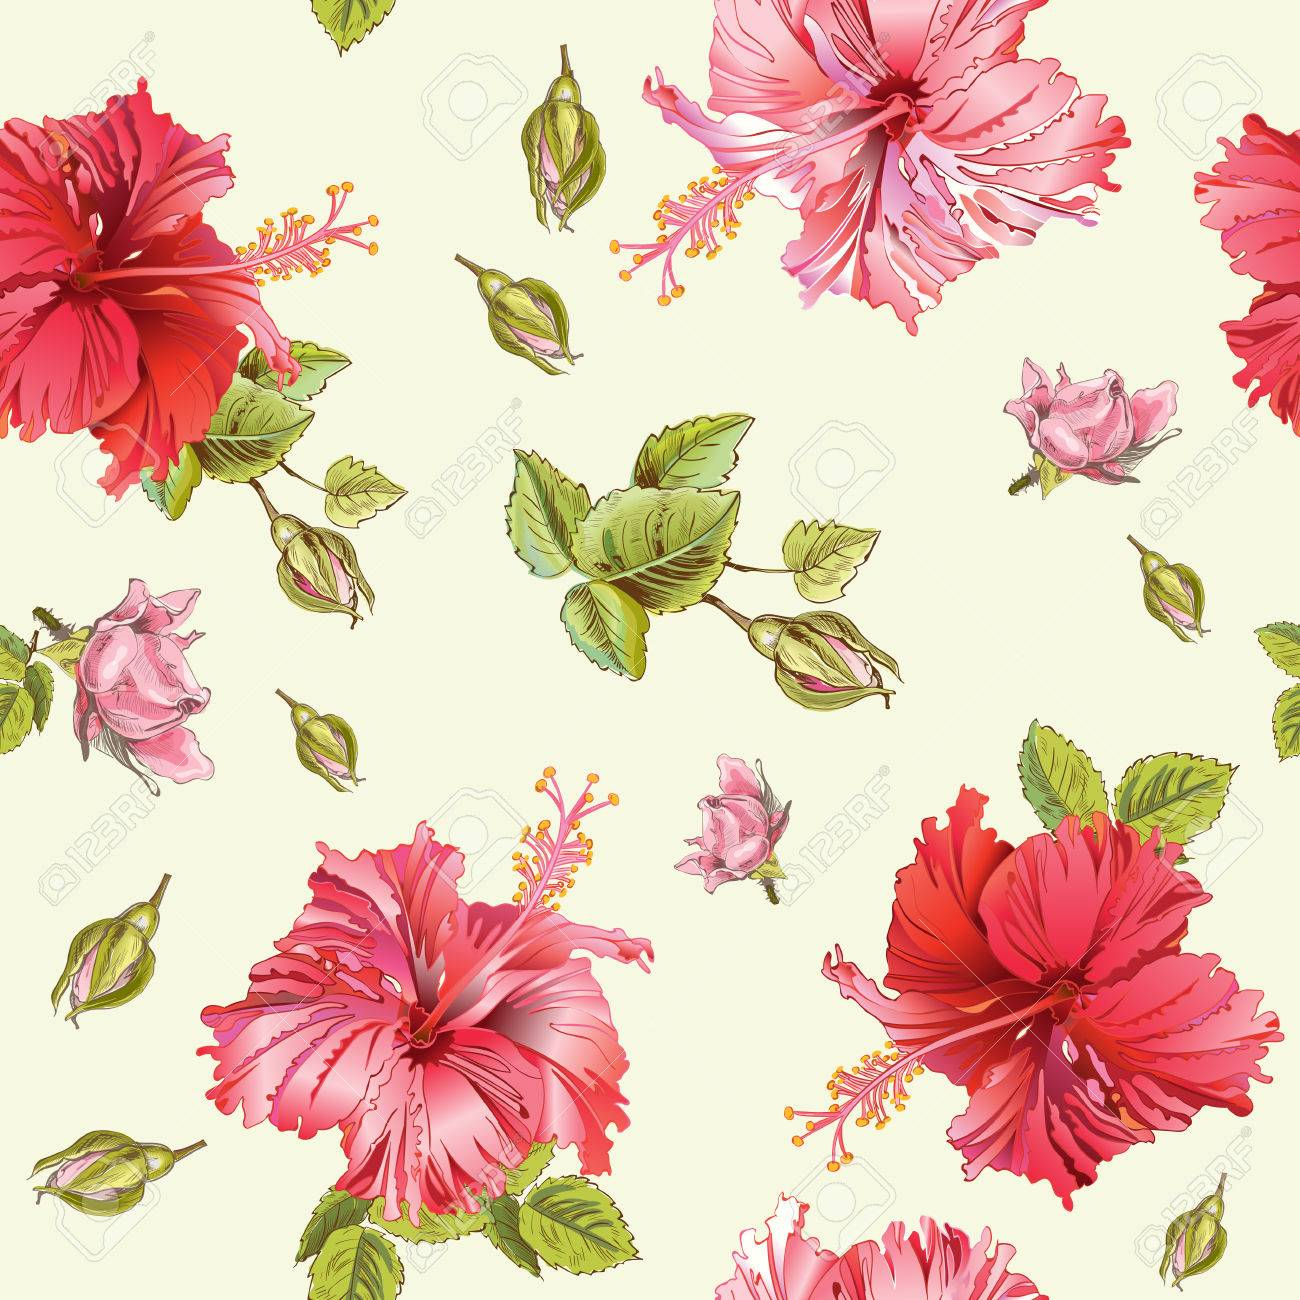 Vector Seamless Pattern With Hibiscus Flowersckground Design